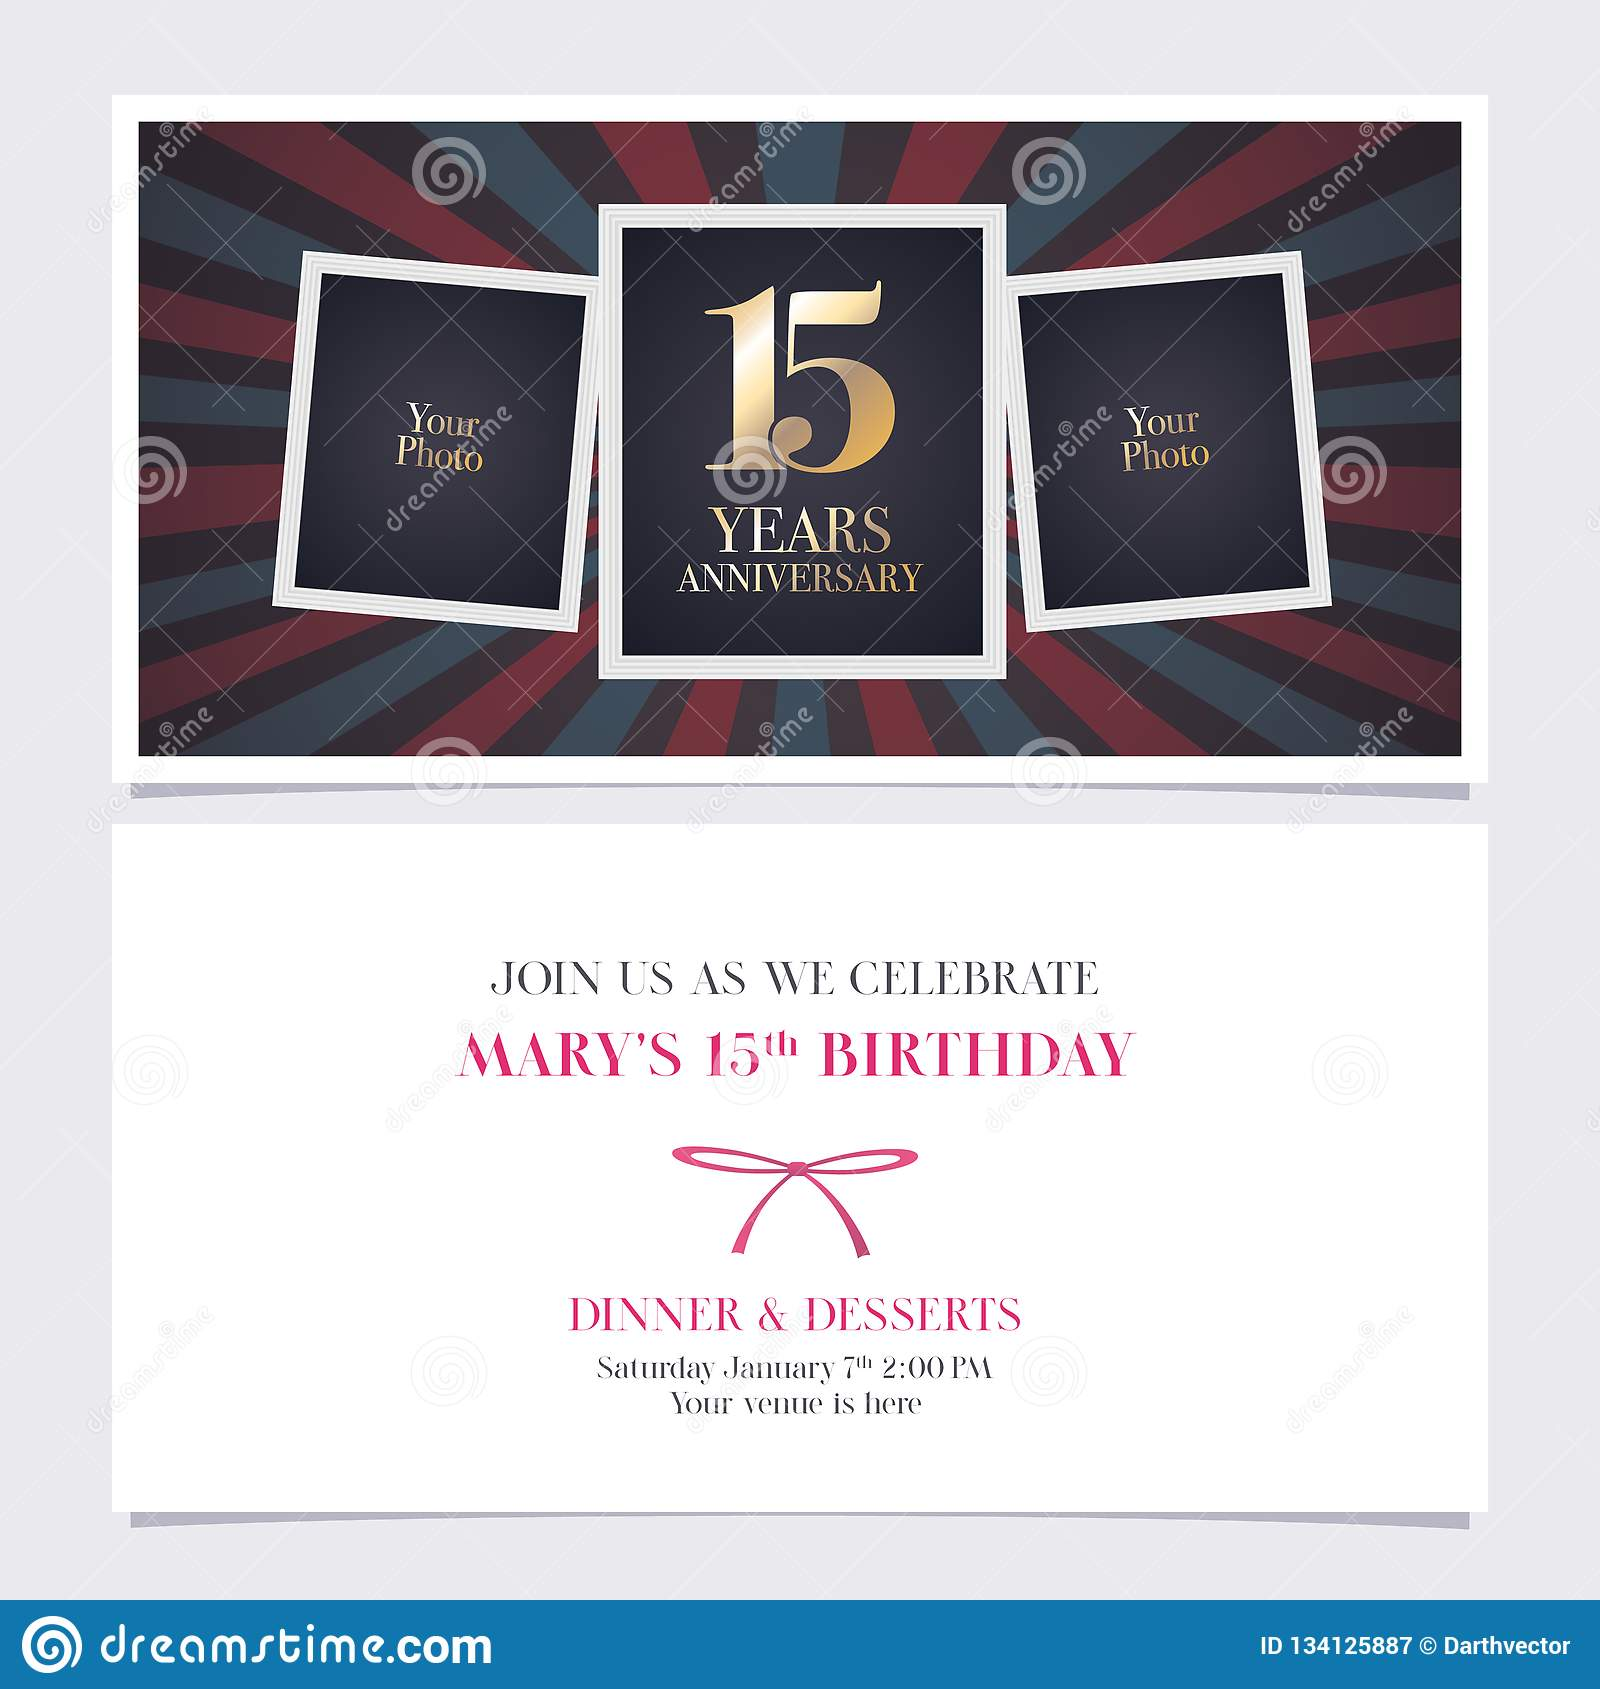 15 Years Anniversary Invitation Vector Illustration Graphic Design Element With Photo Frame Collage For 15th Birthday Card Party Invite